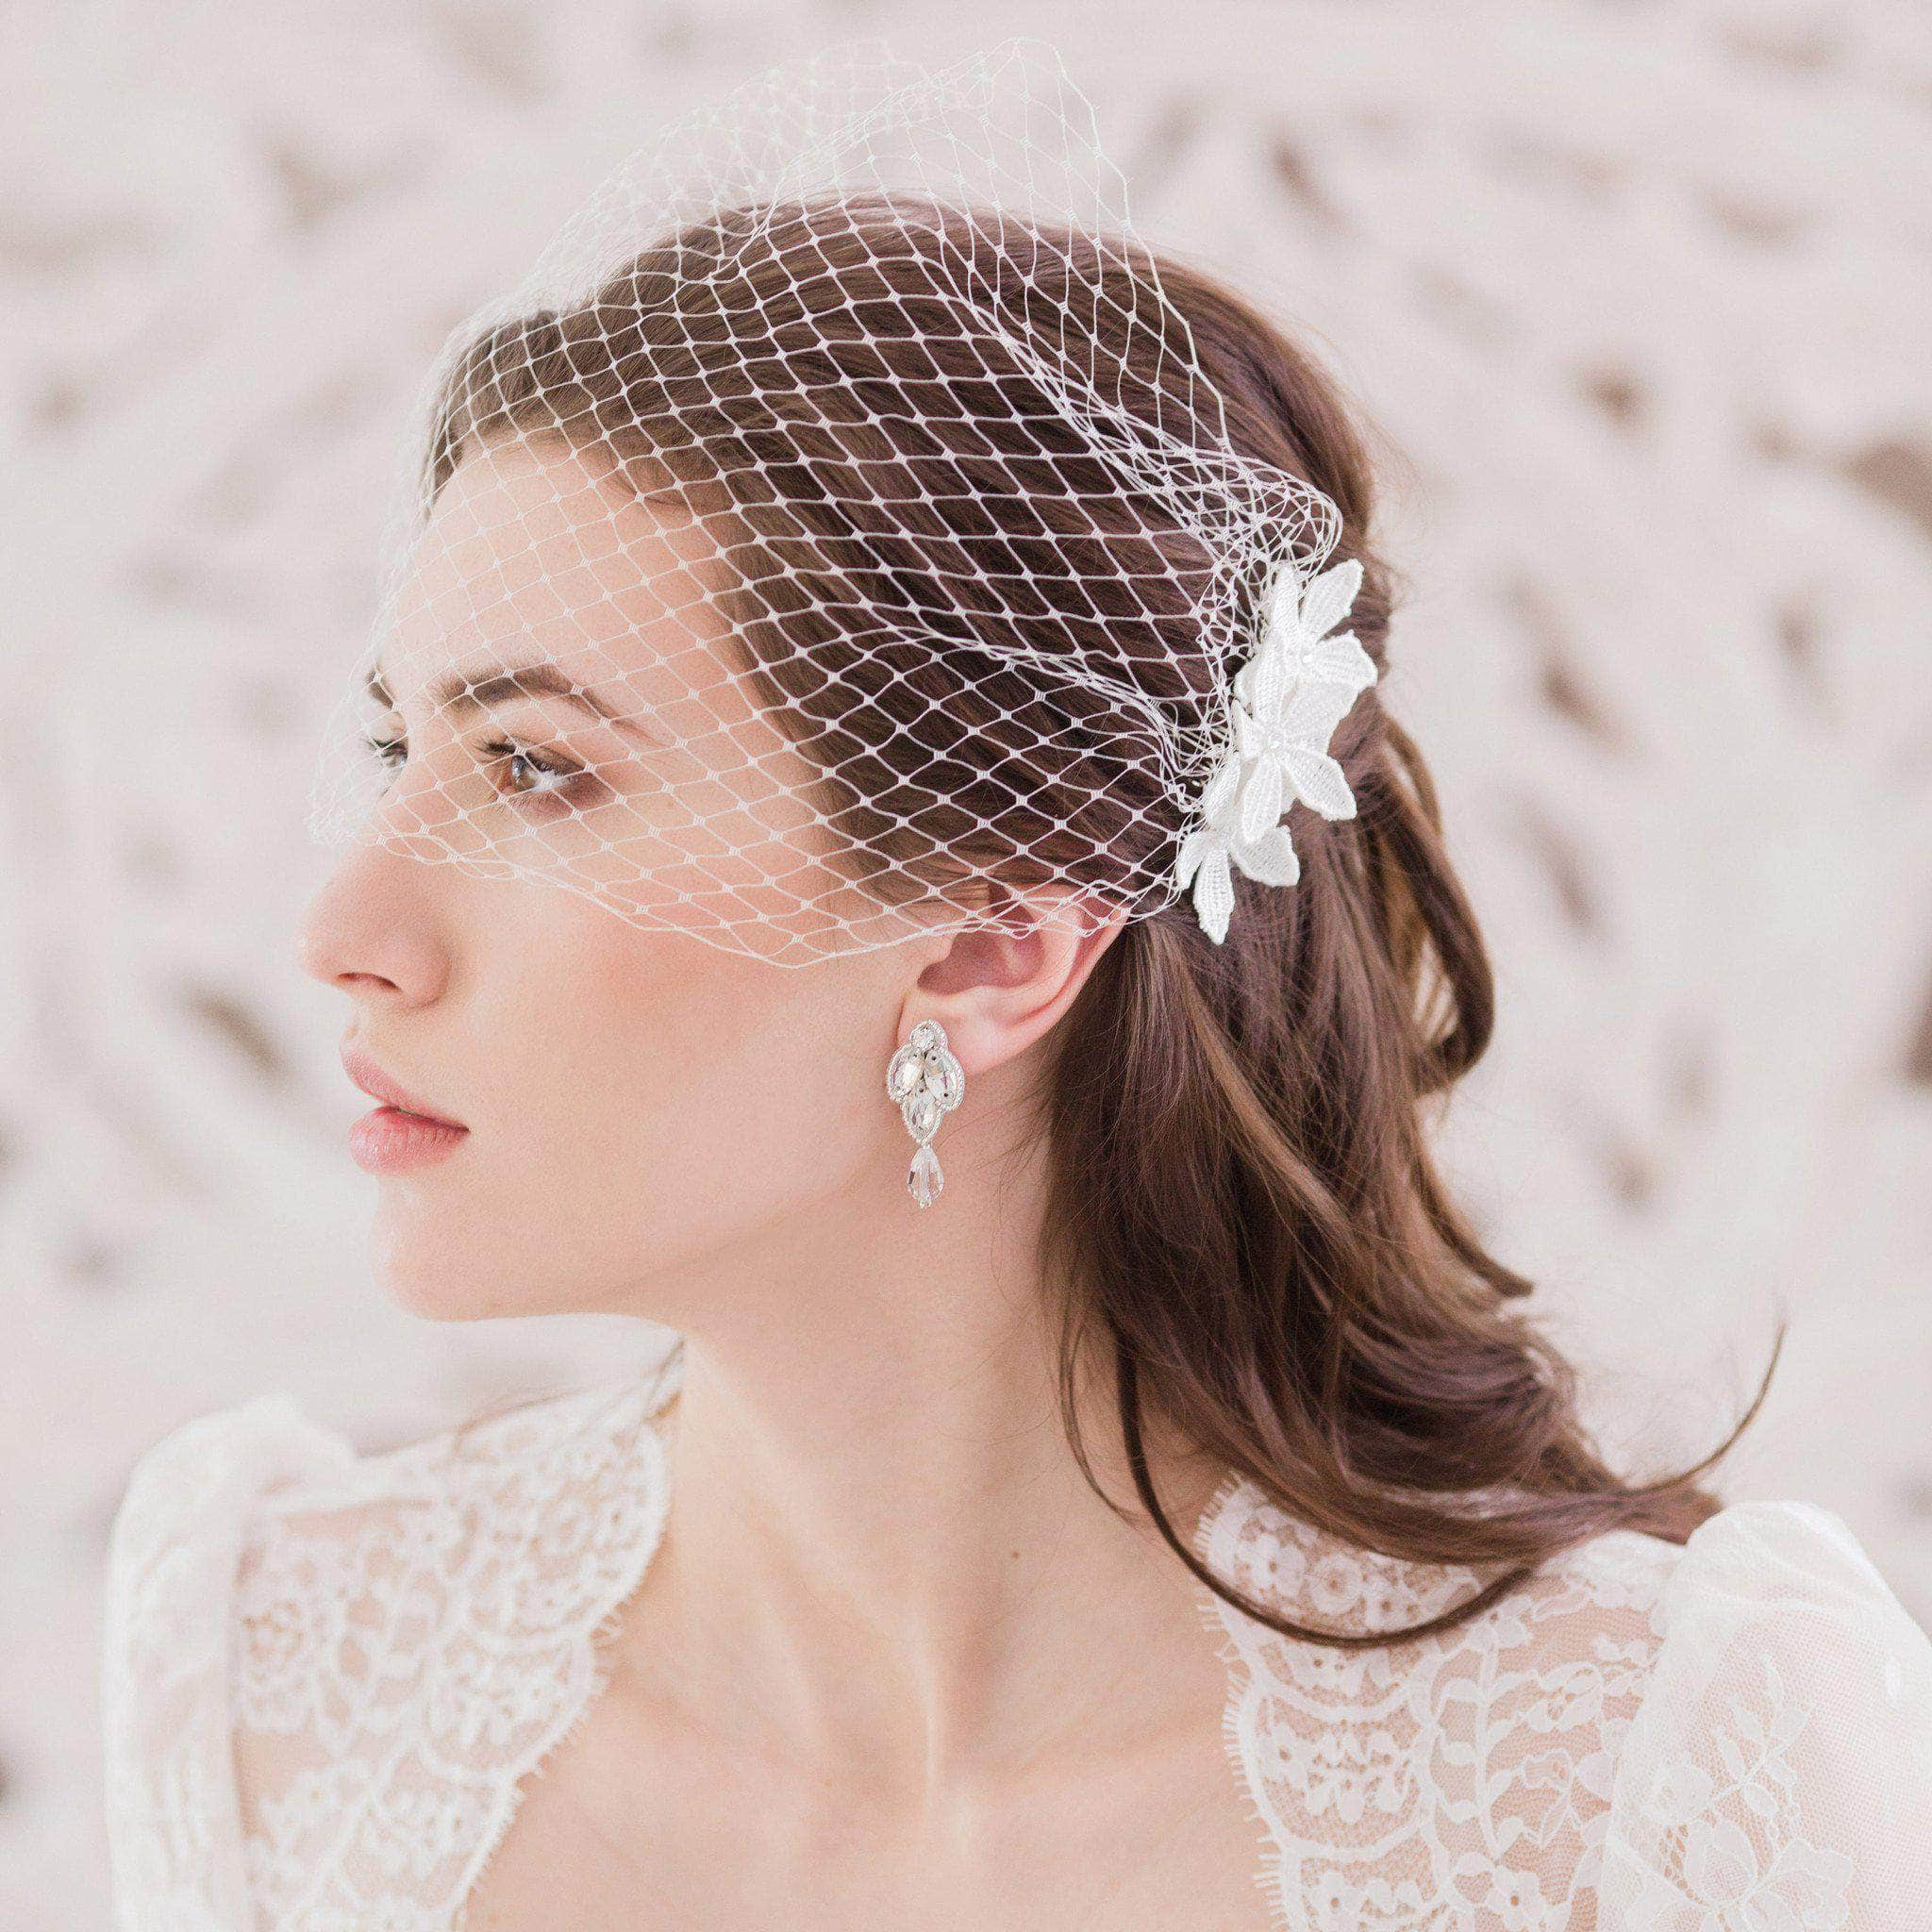 Embellished bandeau wedding veil of Russian net - 'Alexandrova'